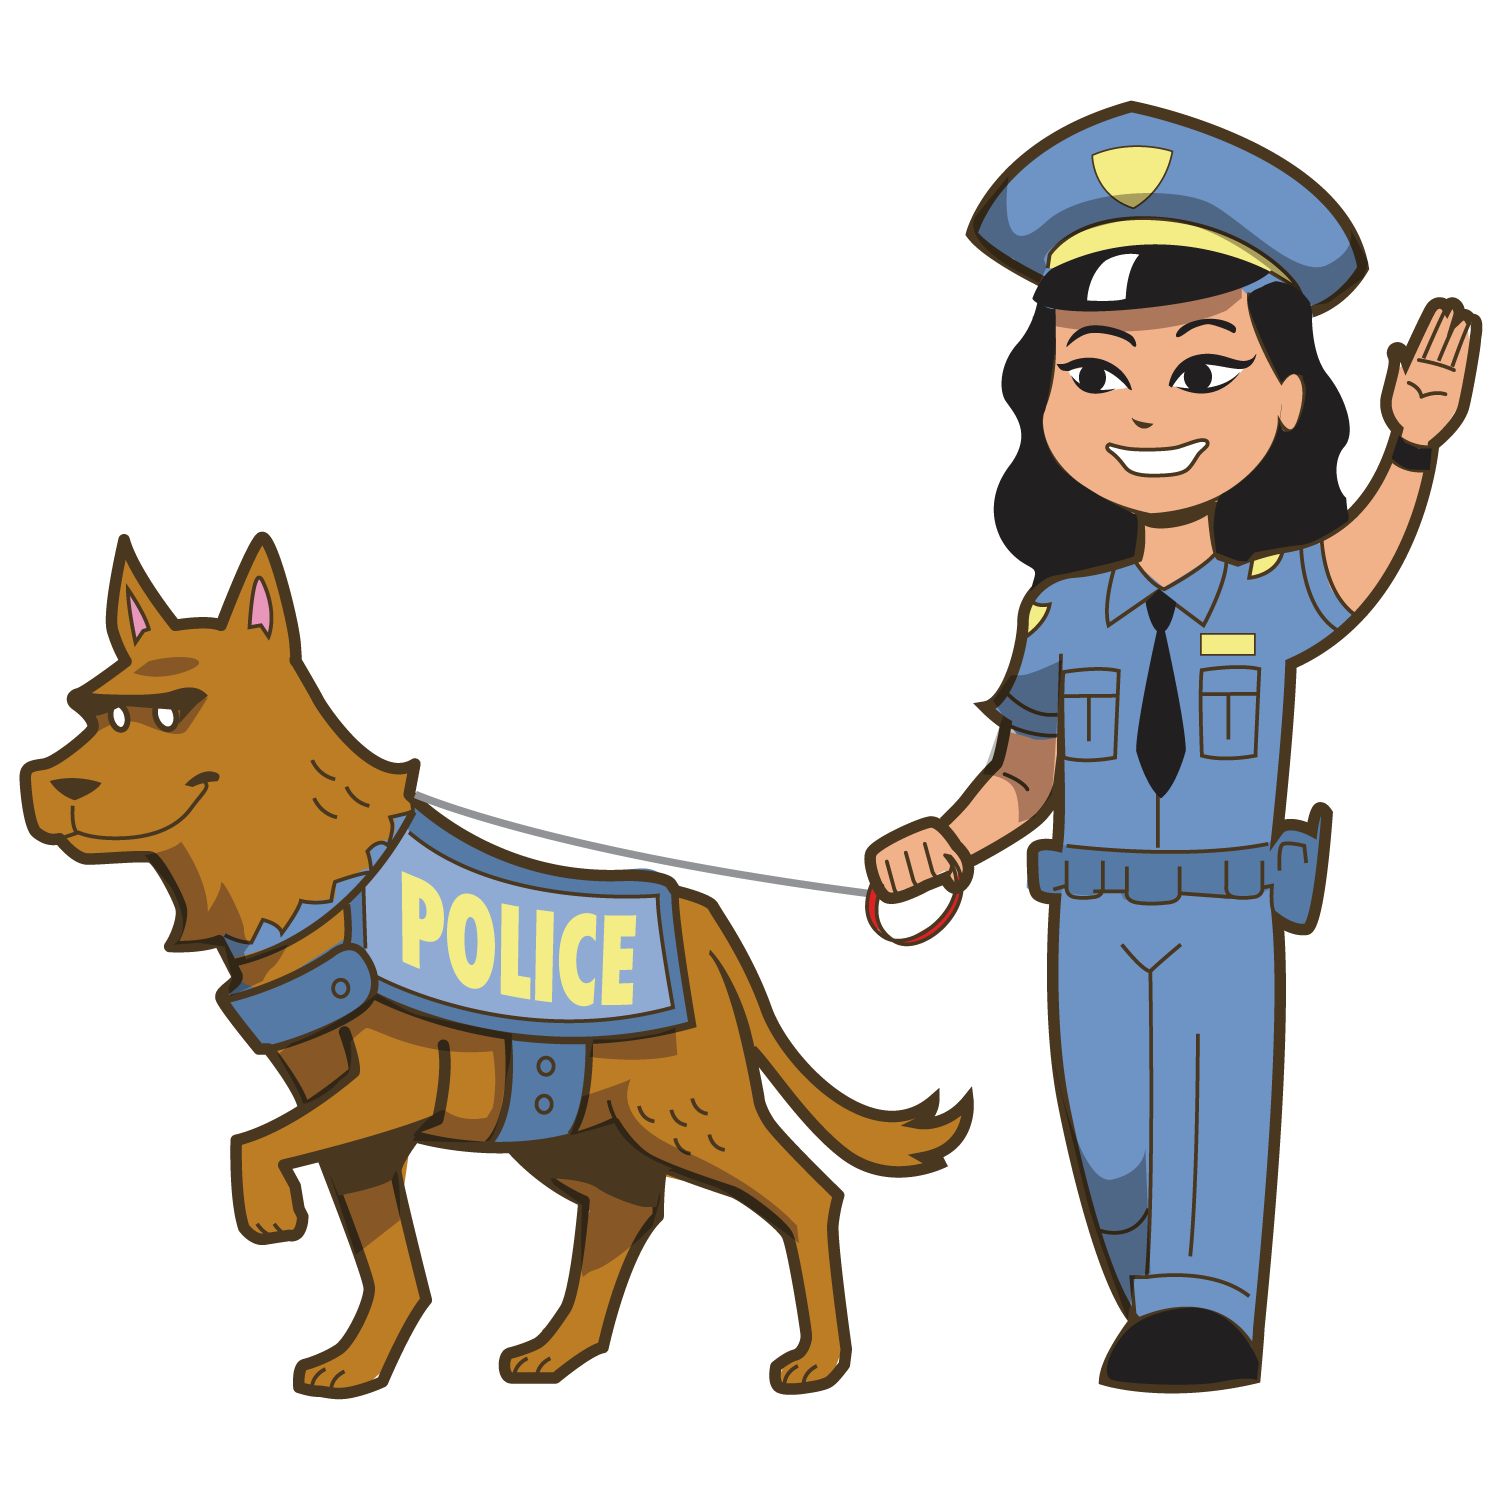 Police officer and dog clipart png download Police officer Royalty-free Clip art - Police and police dogs 1500 ... png download